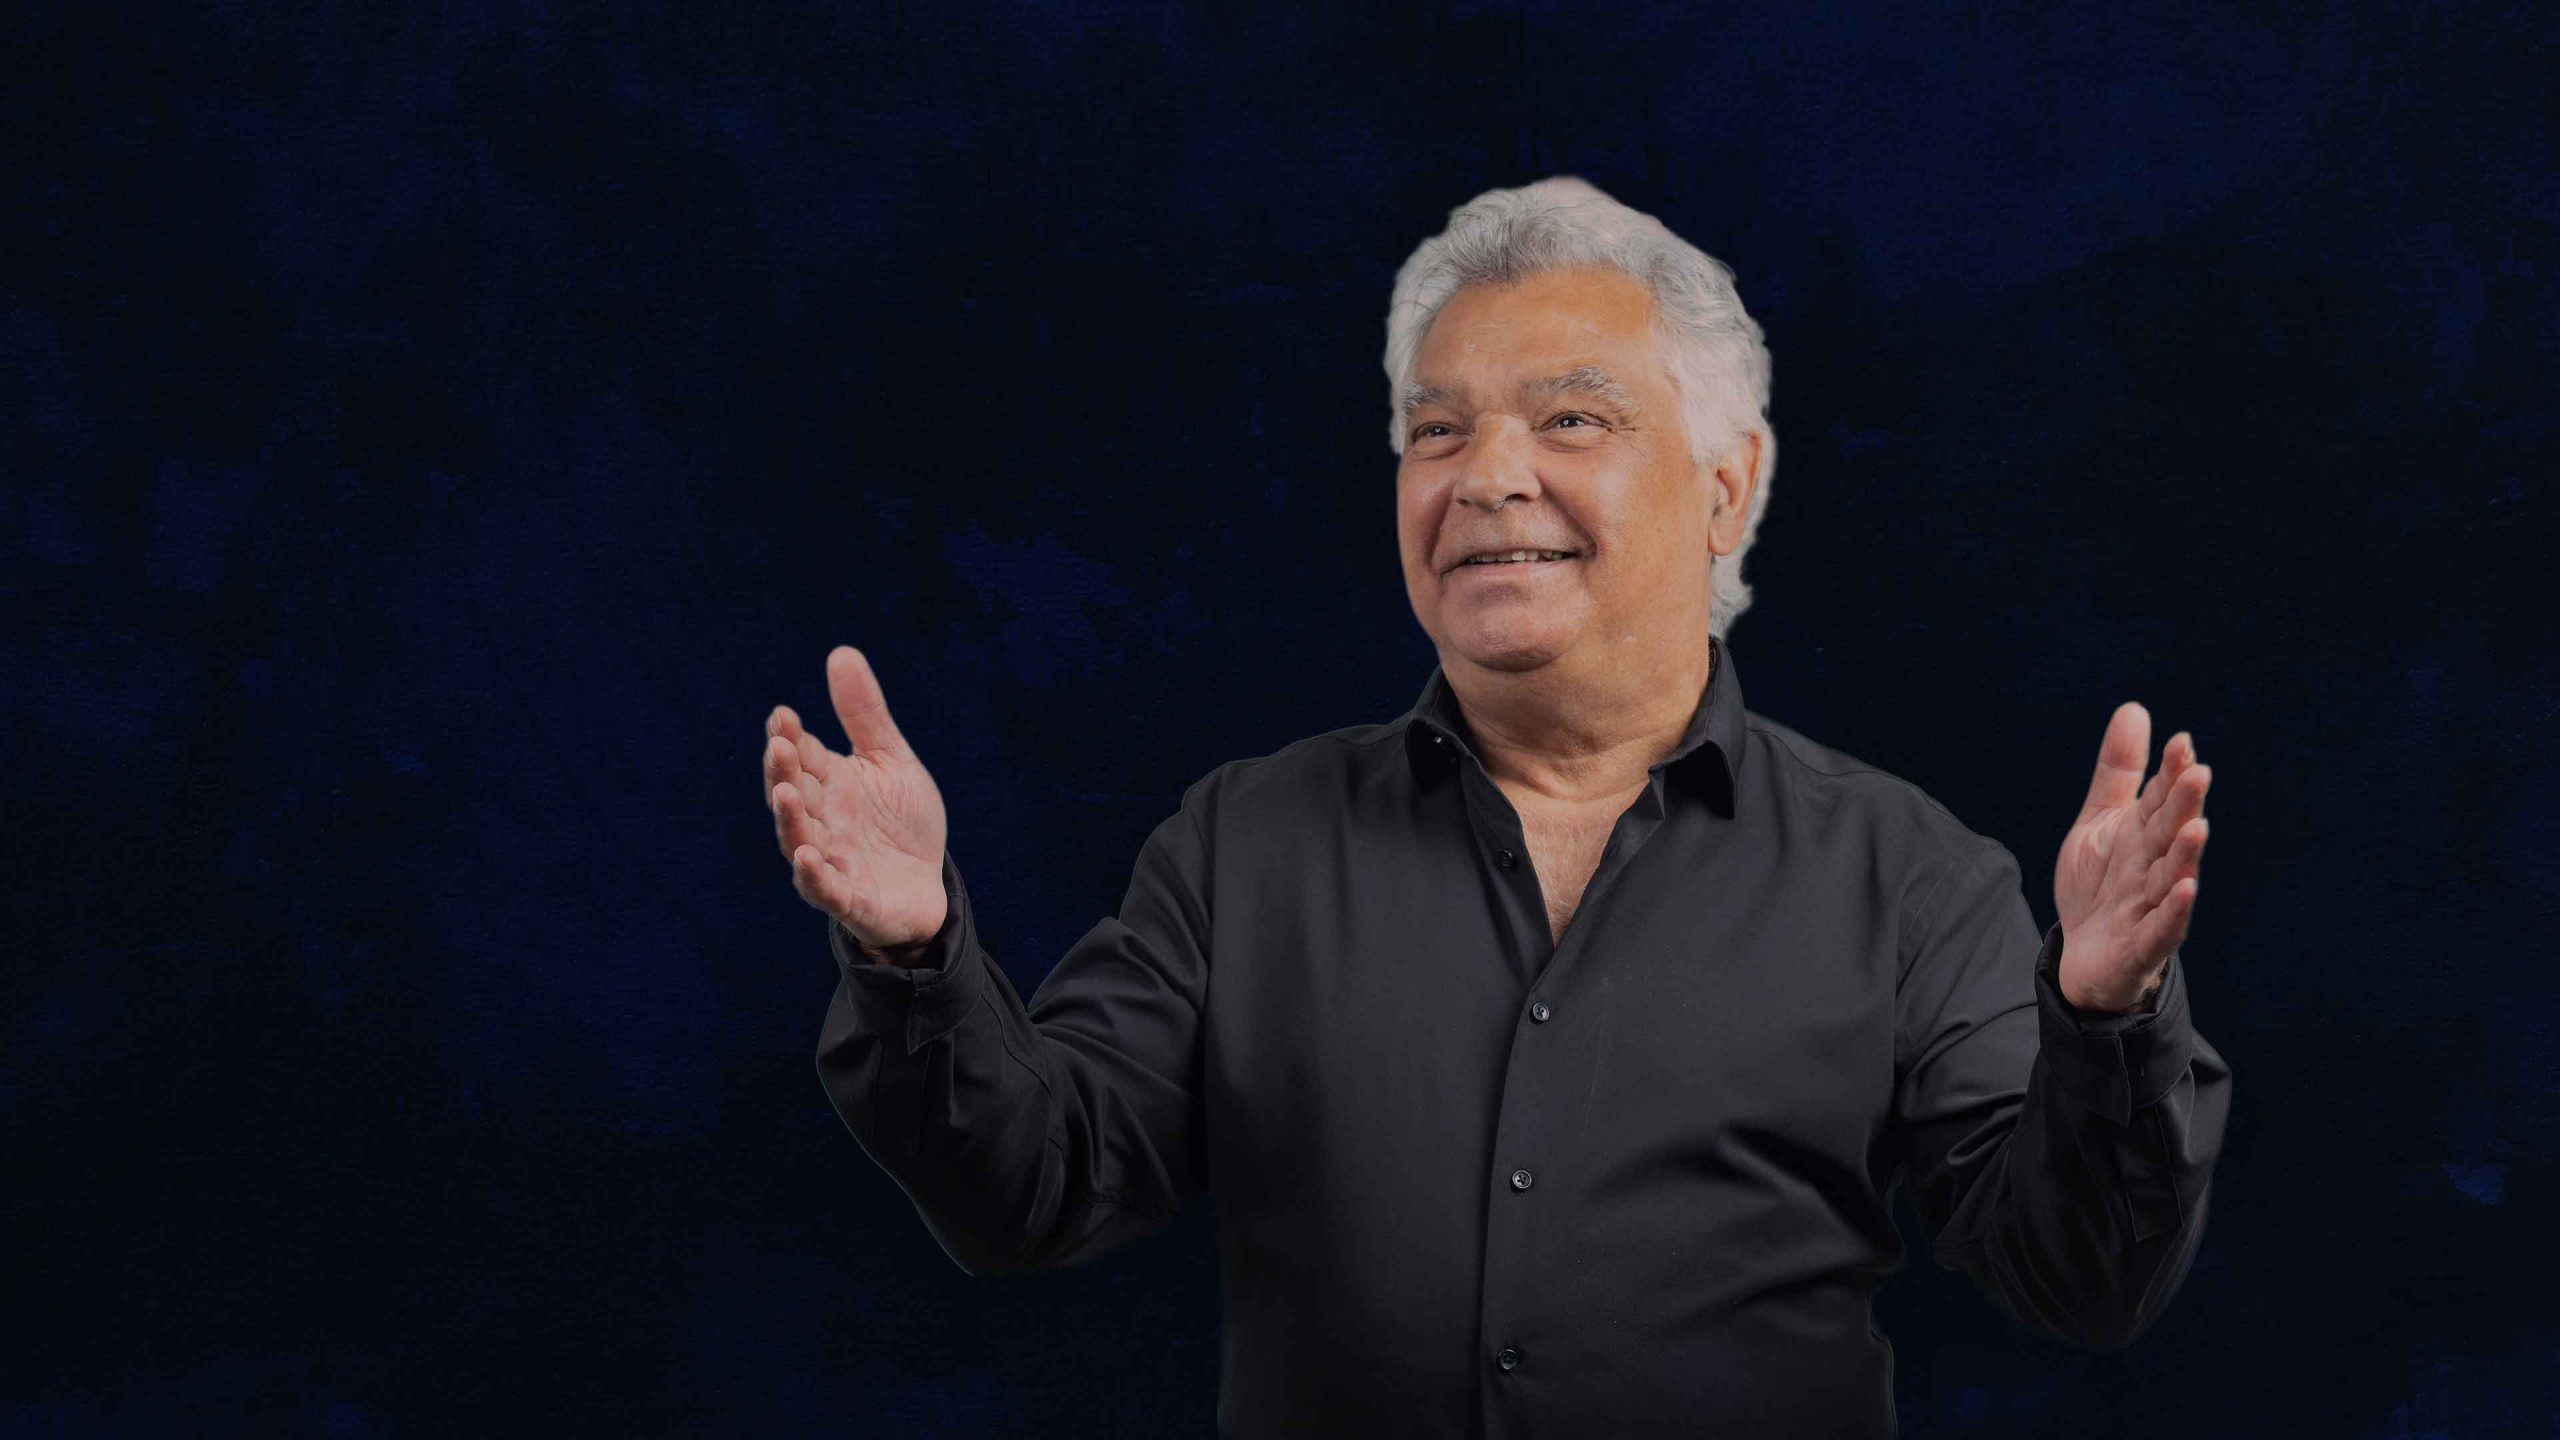 The Gipsy Kings with Nicholas Reyes